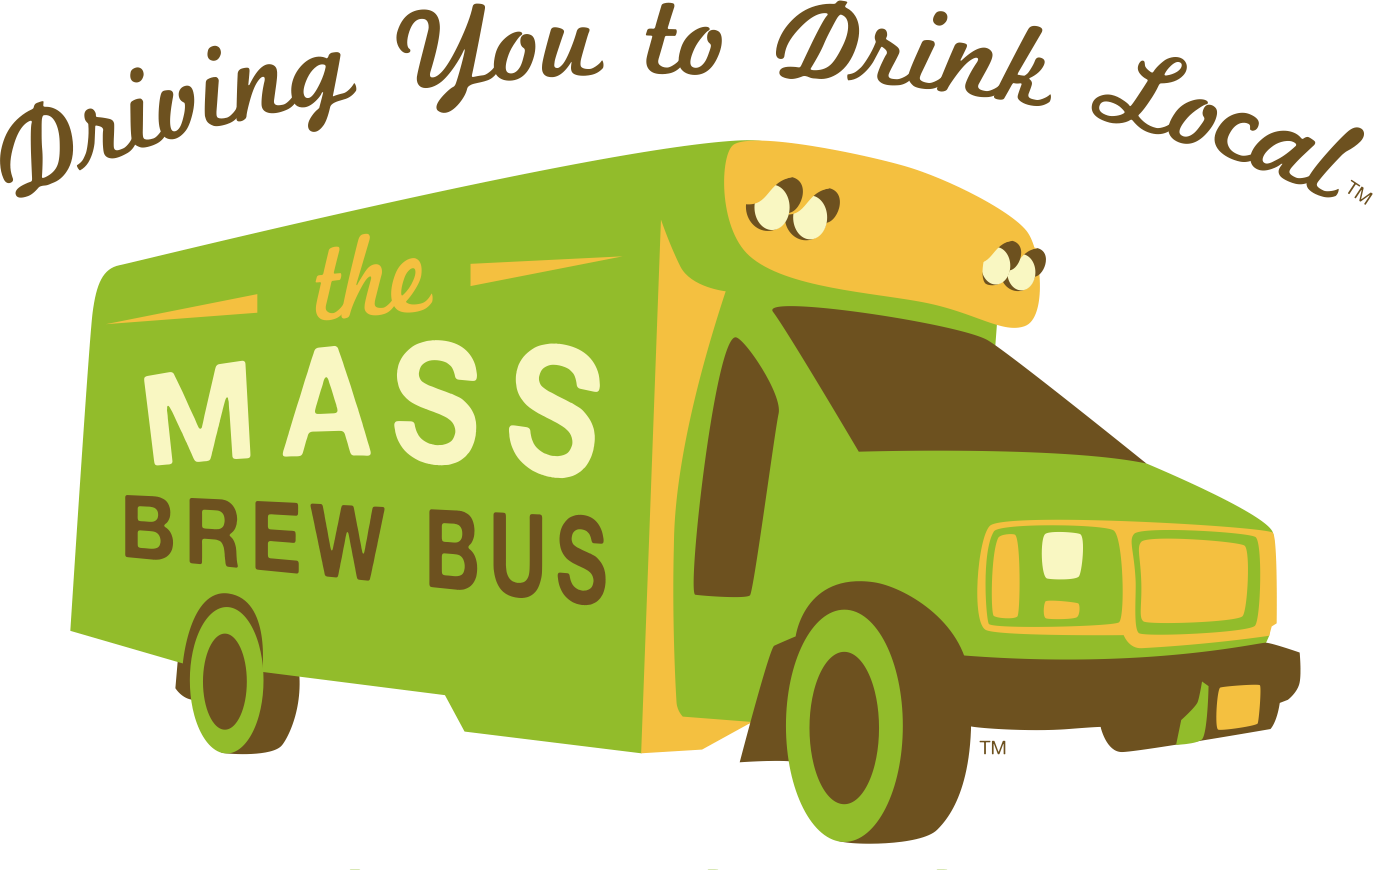 Mass Brew Bus